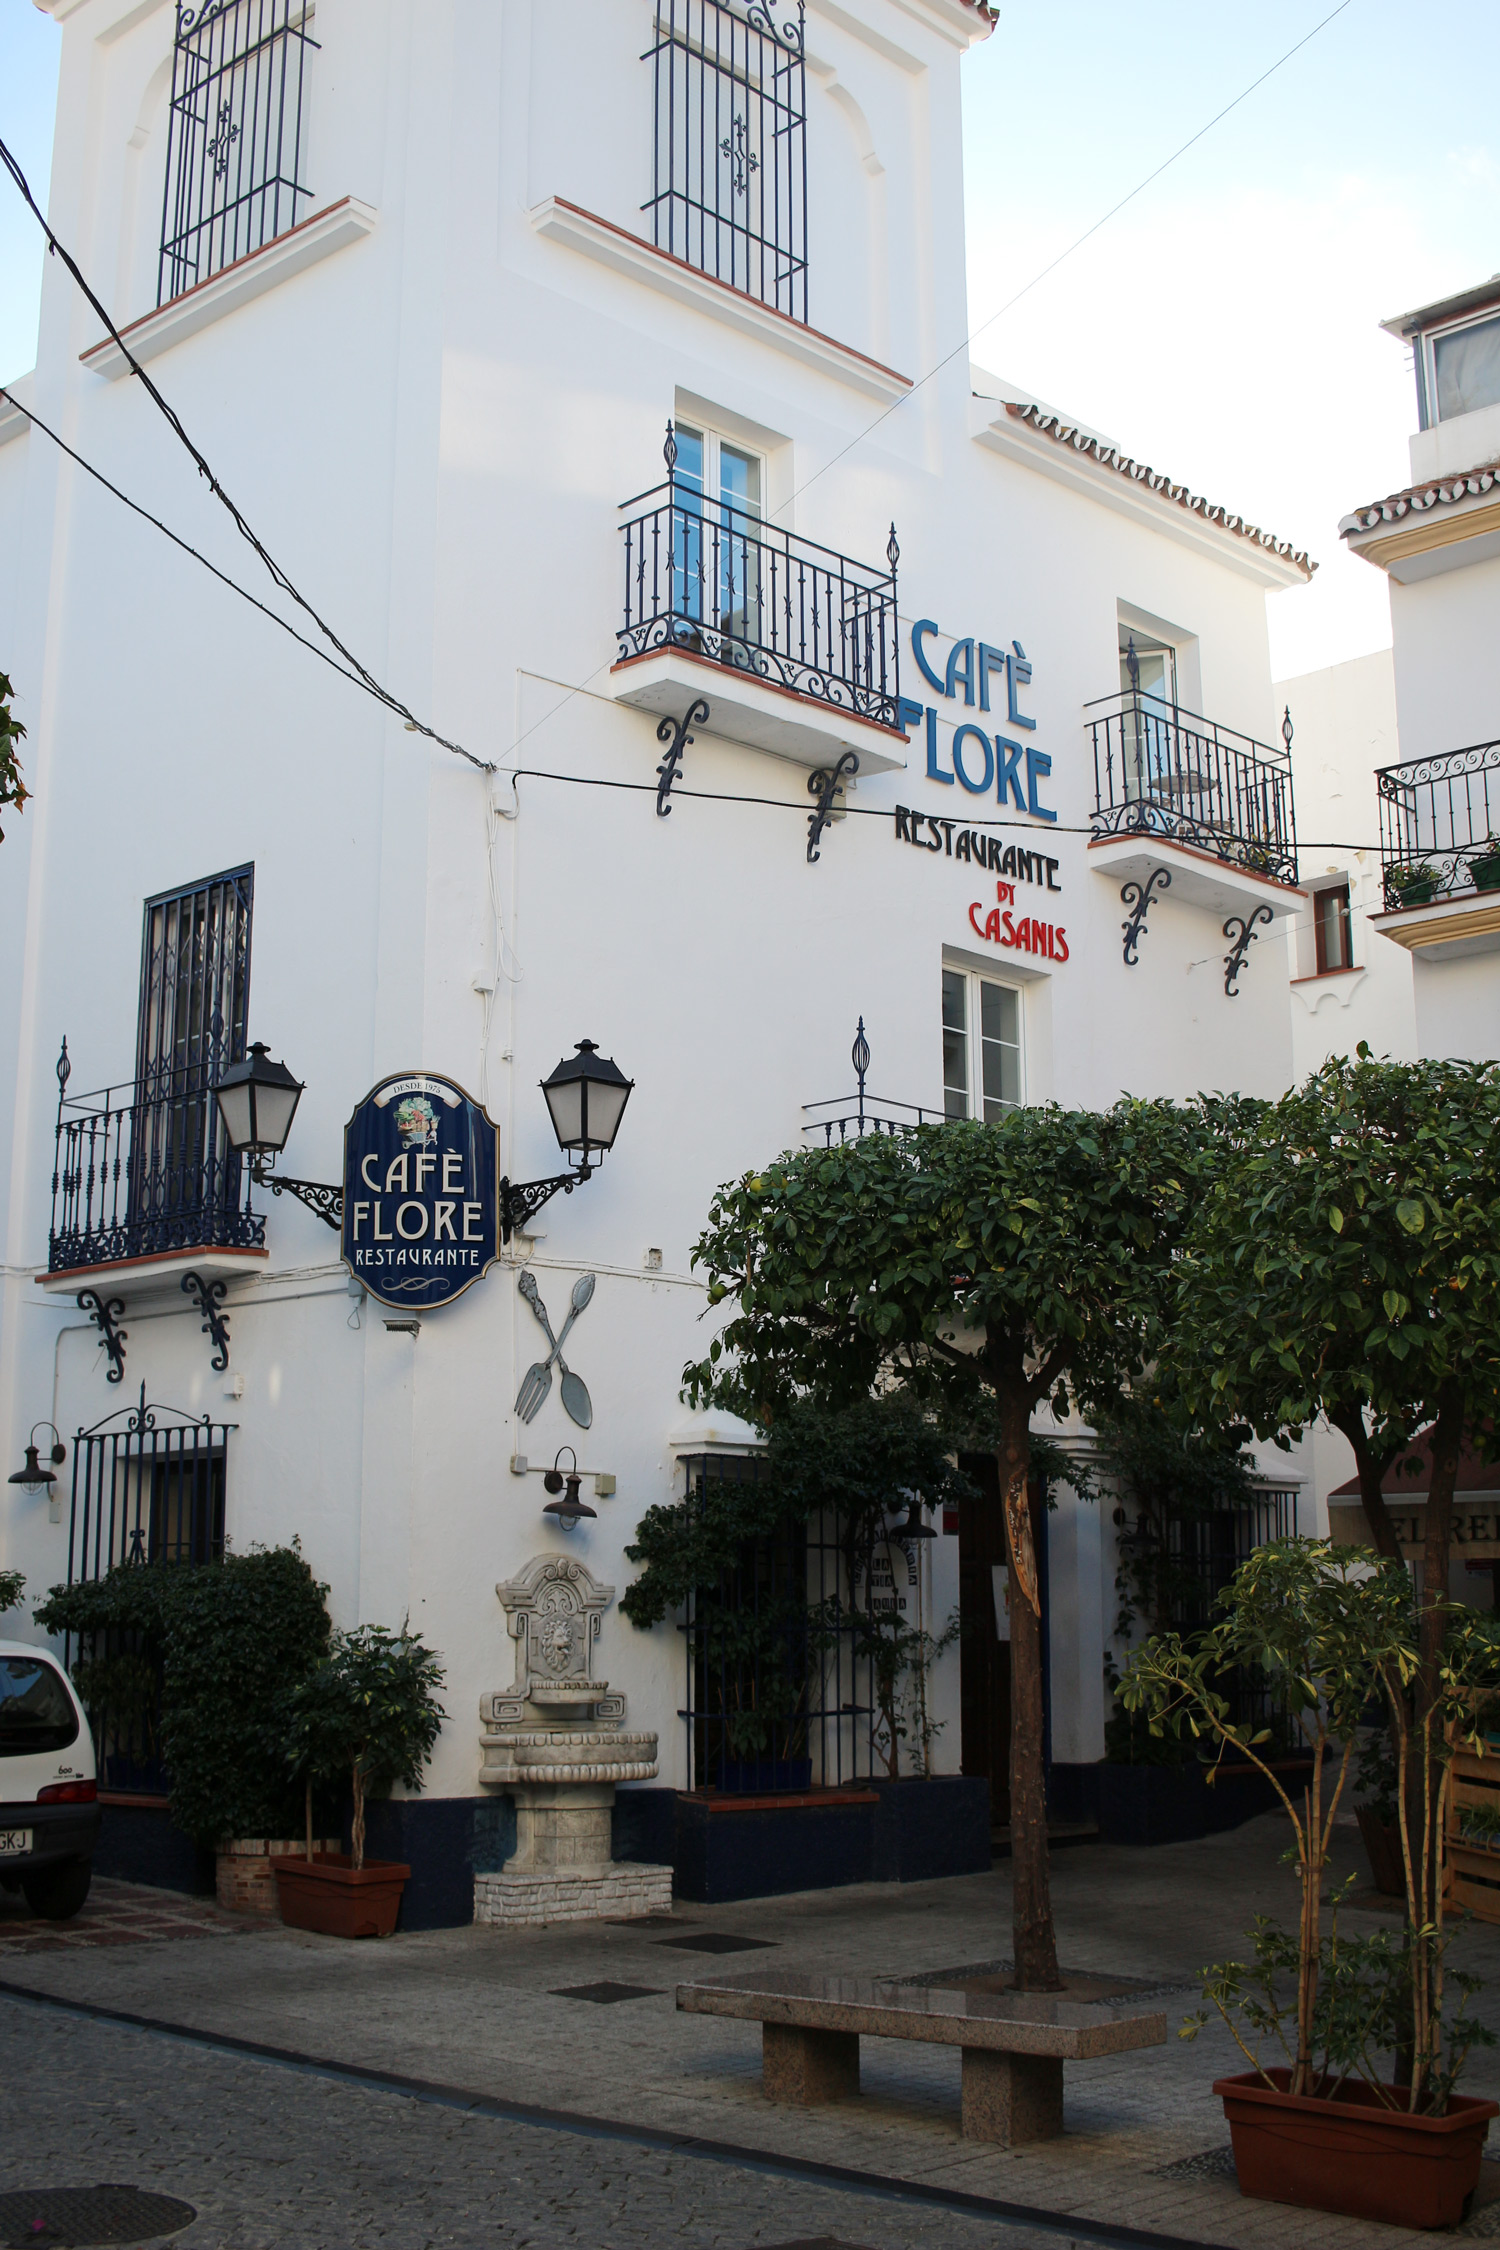 marbella-malaga-spain-travel-blogger-old-town-marbella-11